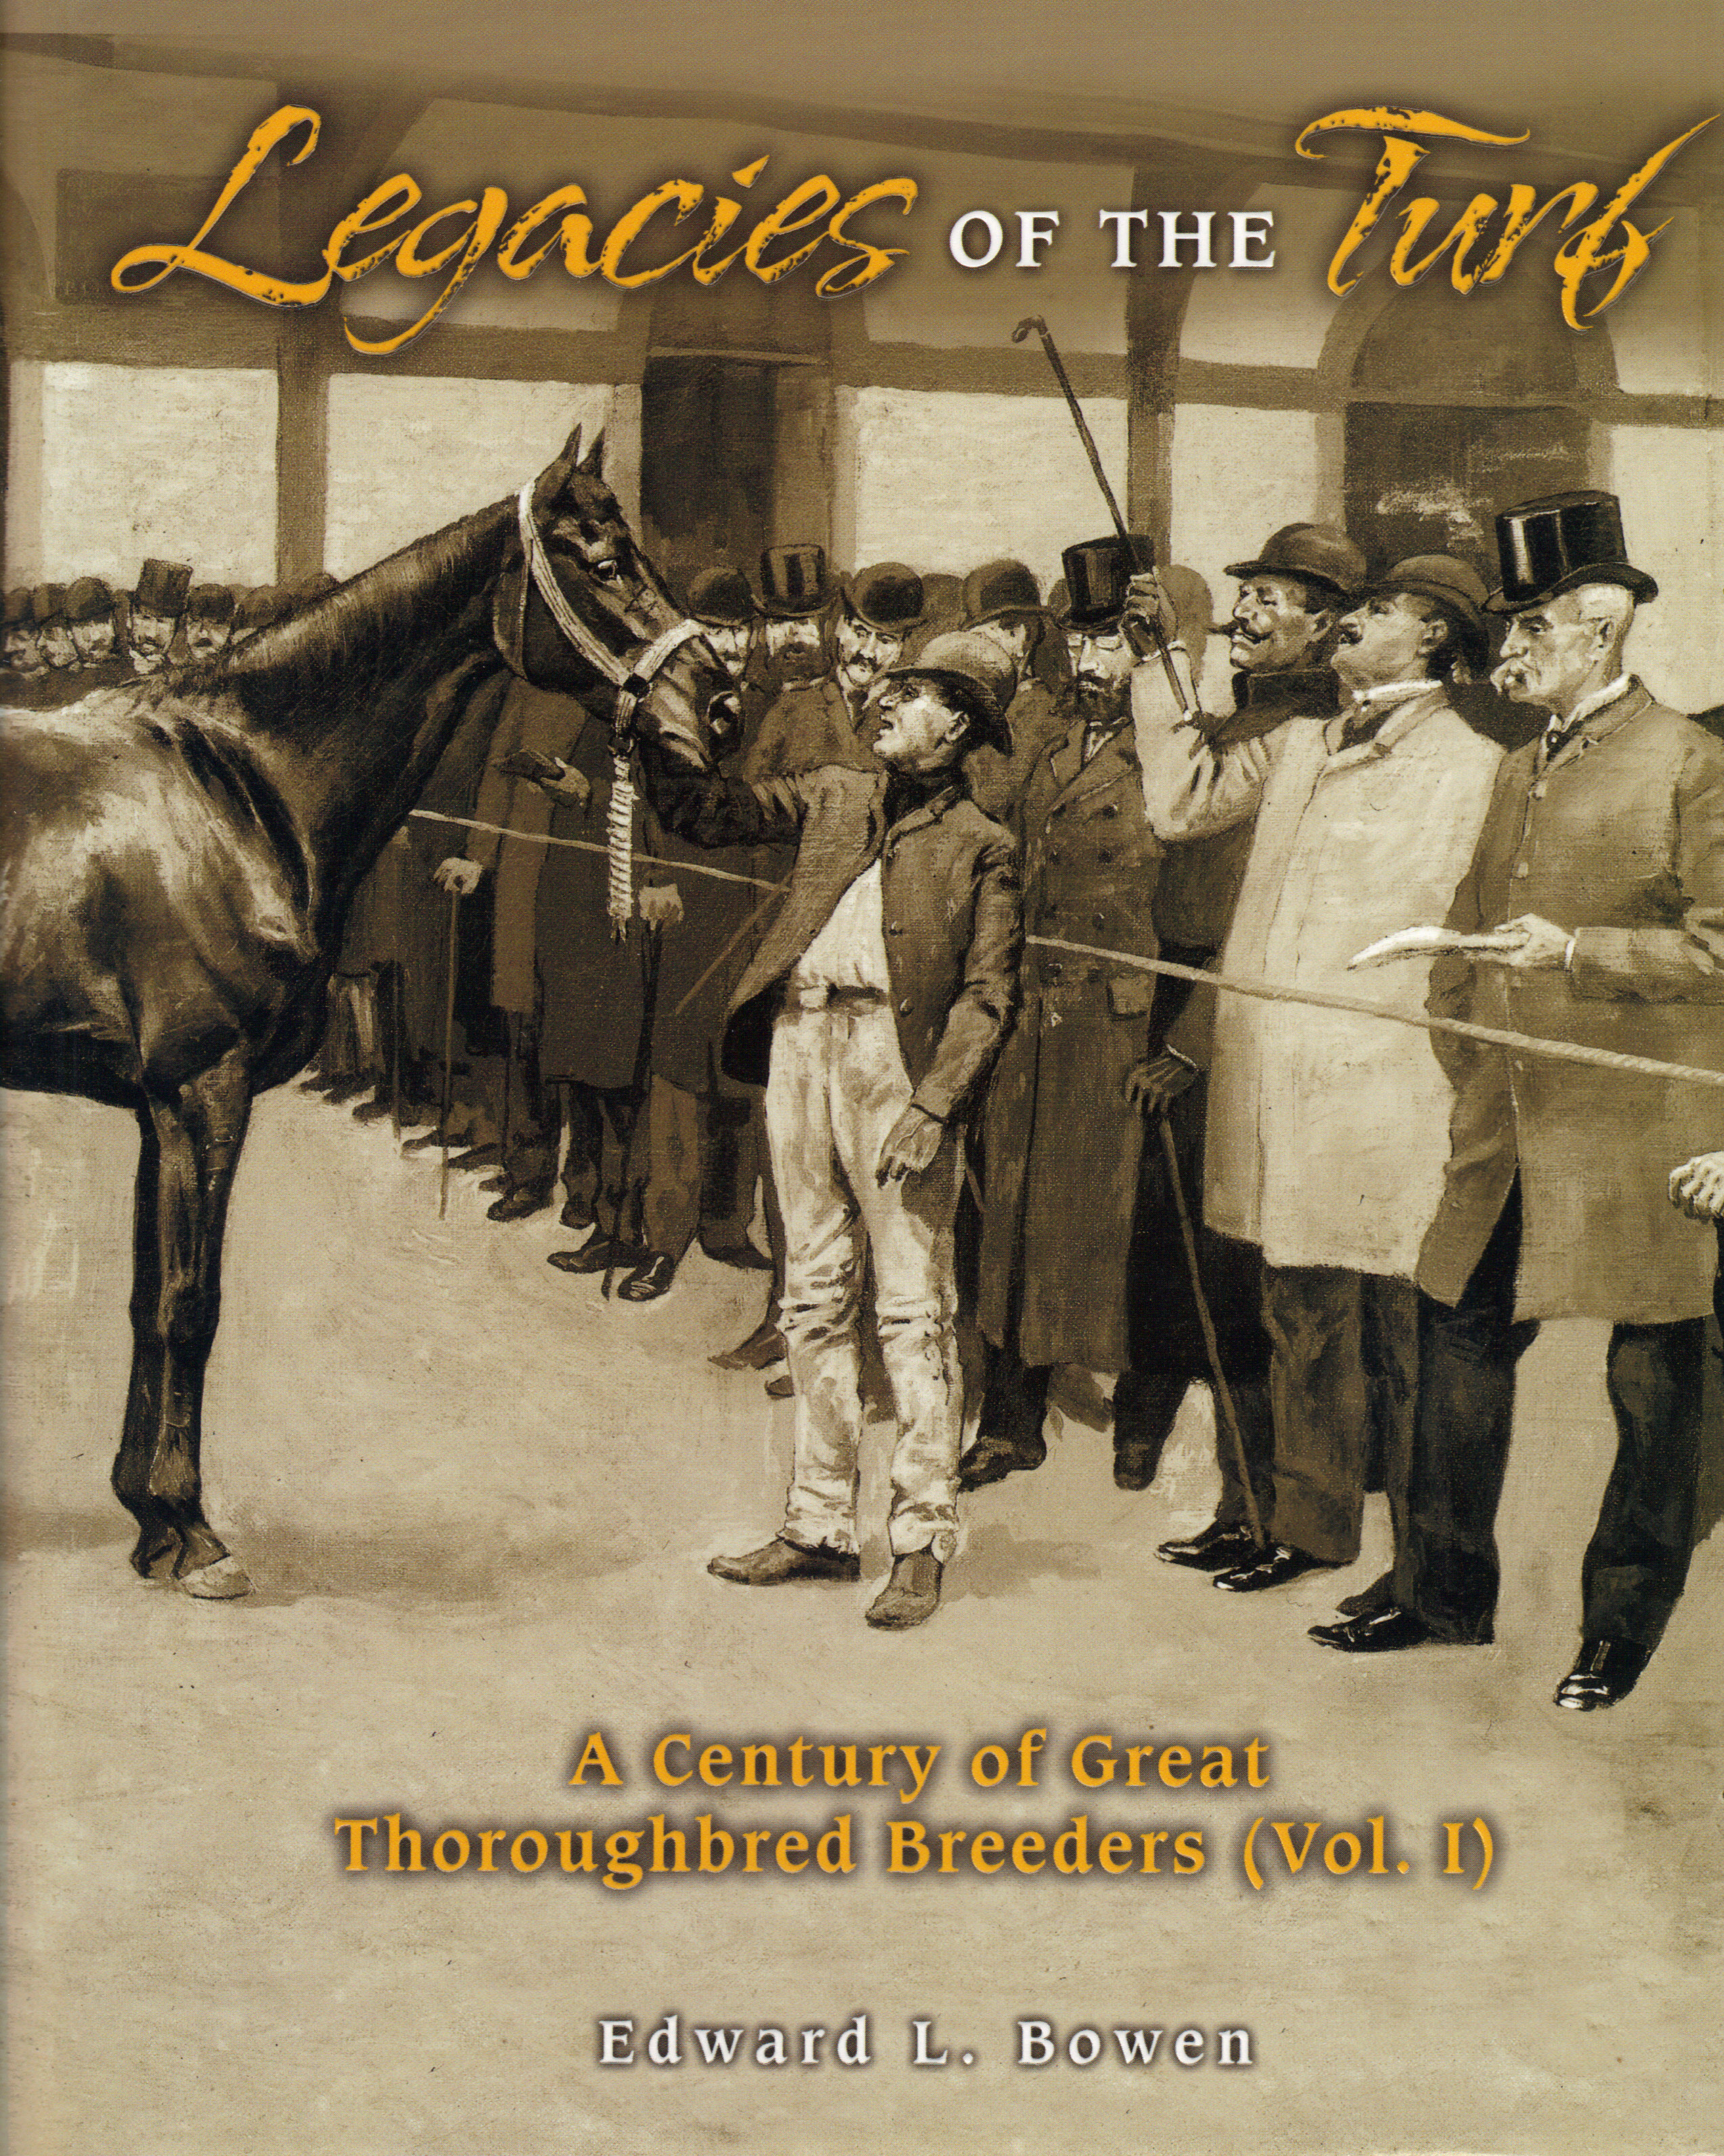 Image for LEGACIES OF THE TURF ~ A Century of Great Thoroughbred Breeders (Vol. 1)